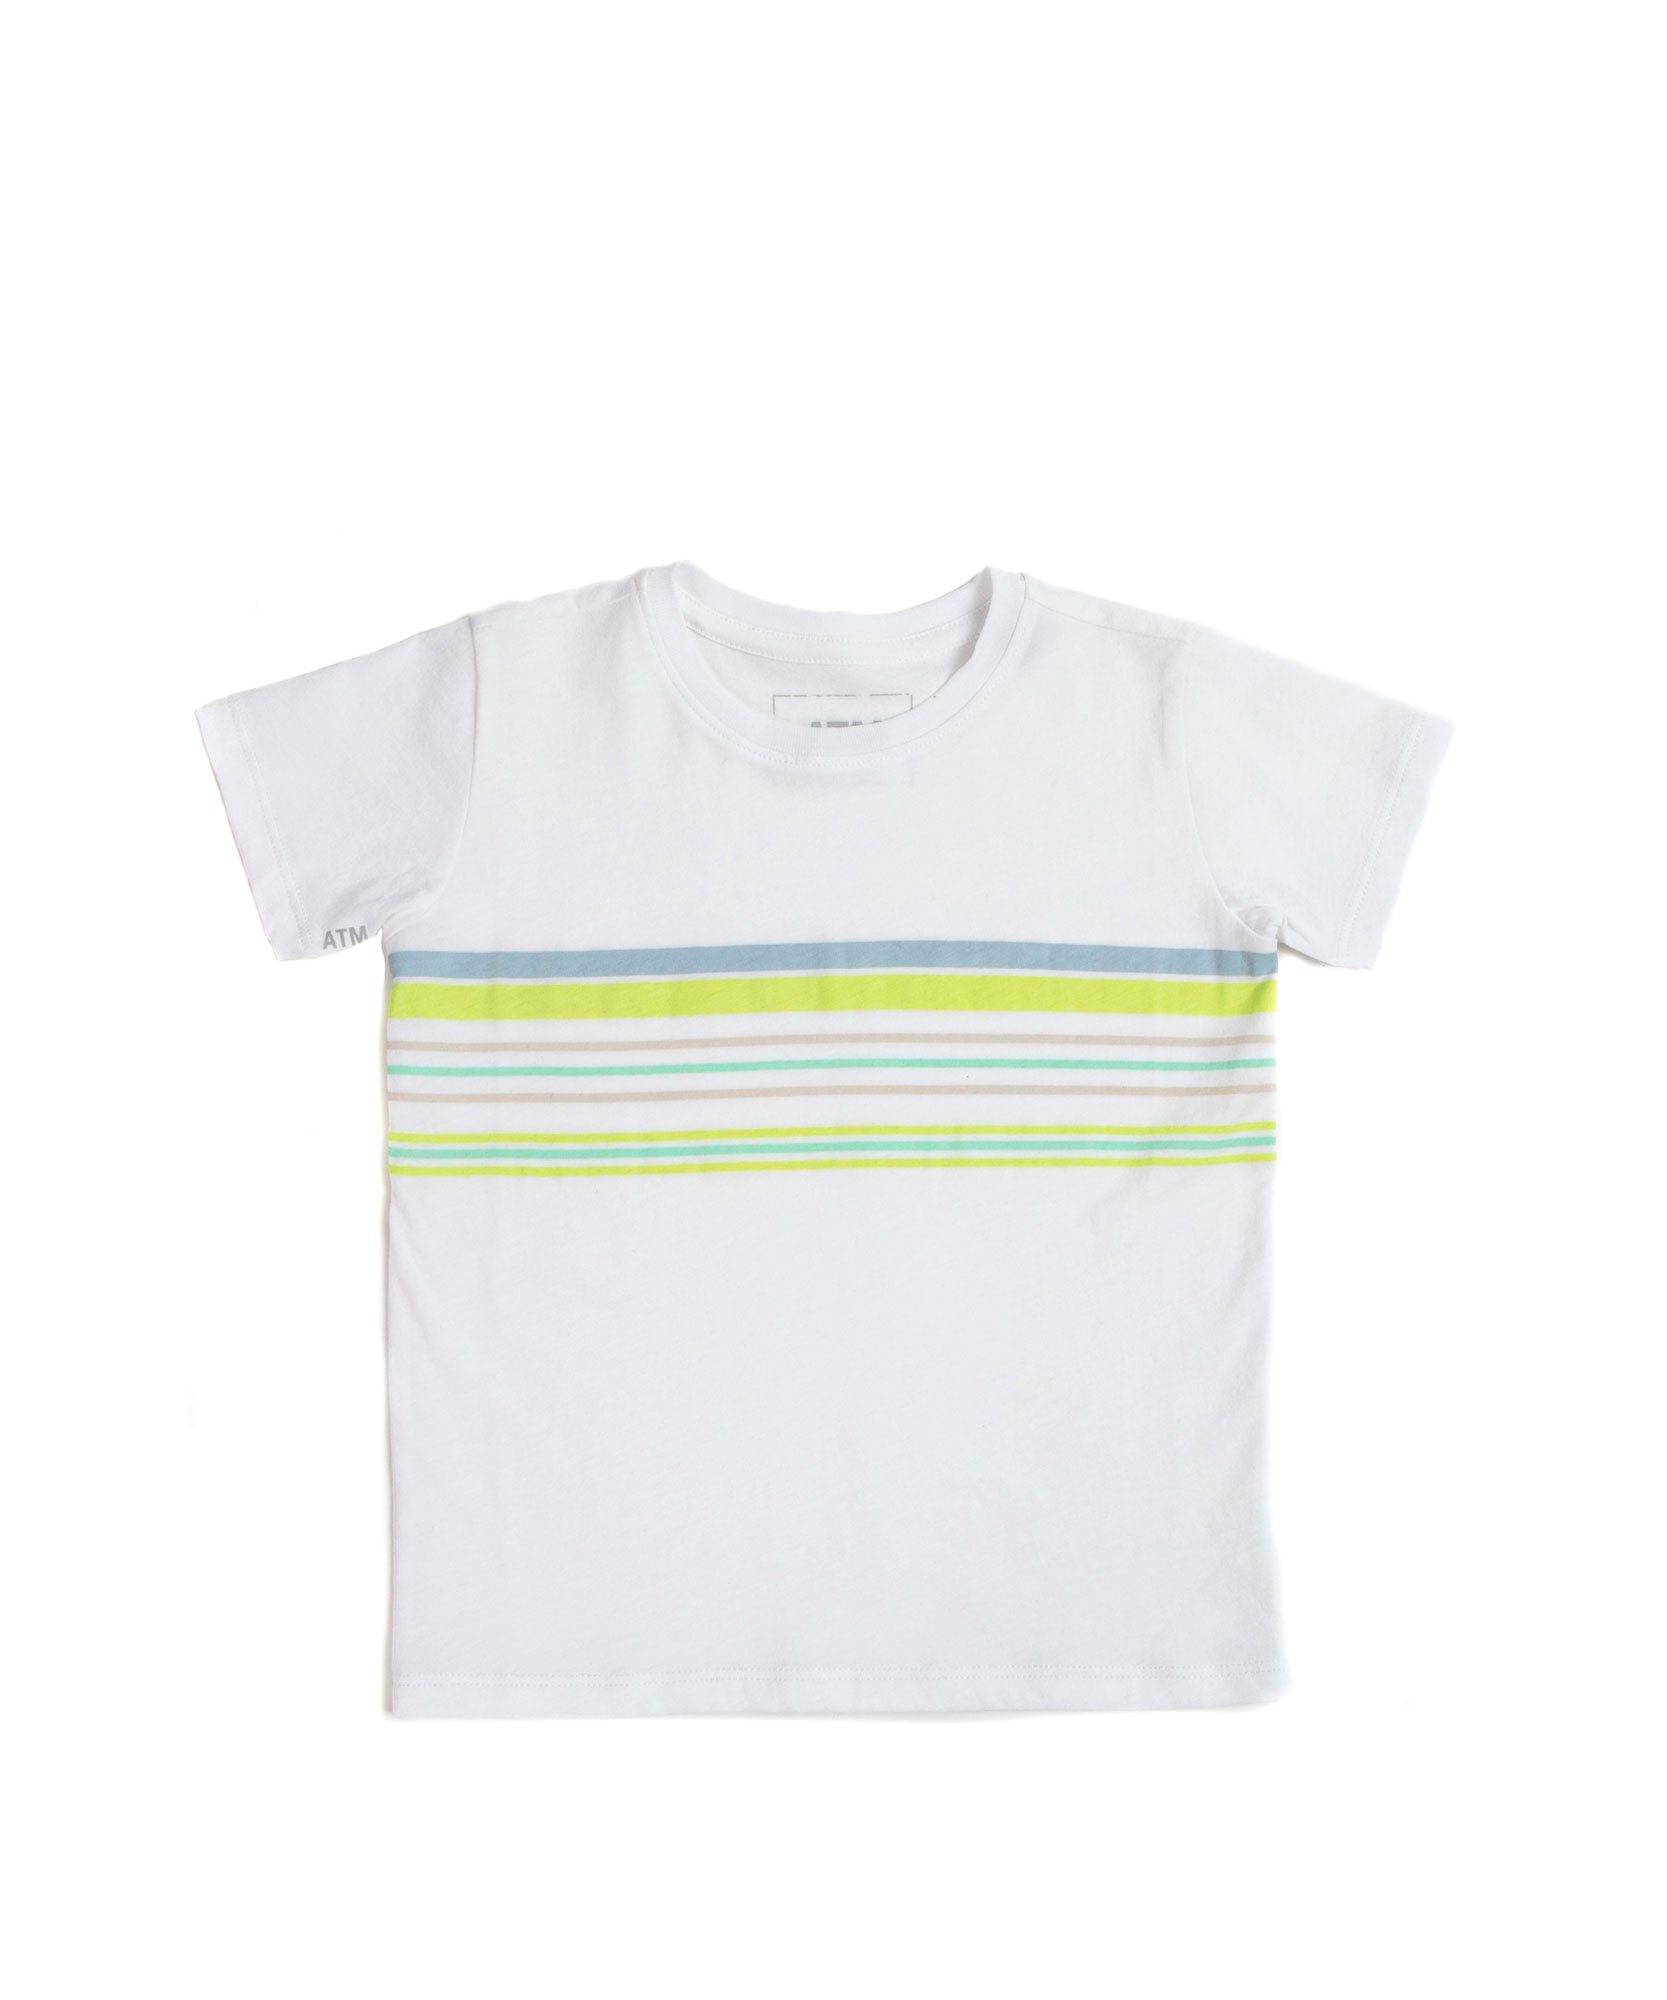 White Surf Stripe Kids Classic Jersey Short Sleeve Tee - Kid's Cotton Short Sleeve Tee by ATM Anthony Thomas Melillo